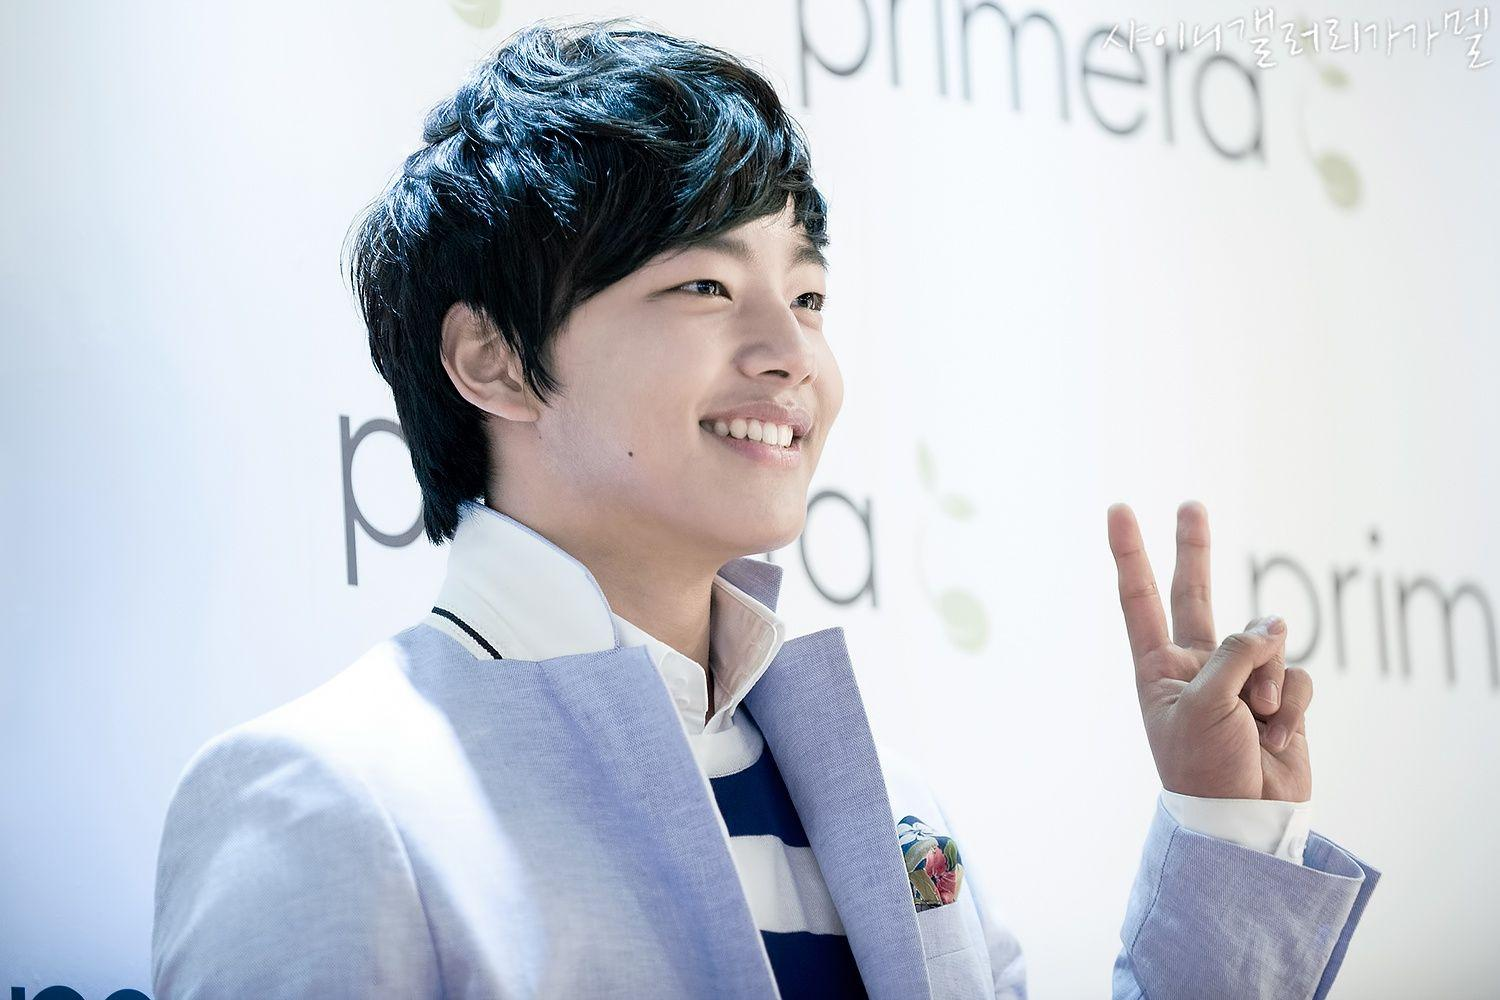 Yeo Jin Goo's Has Transformed From Child Actor To Leading Heartthrob